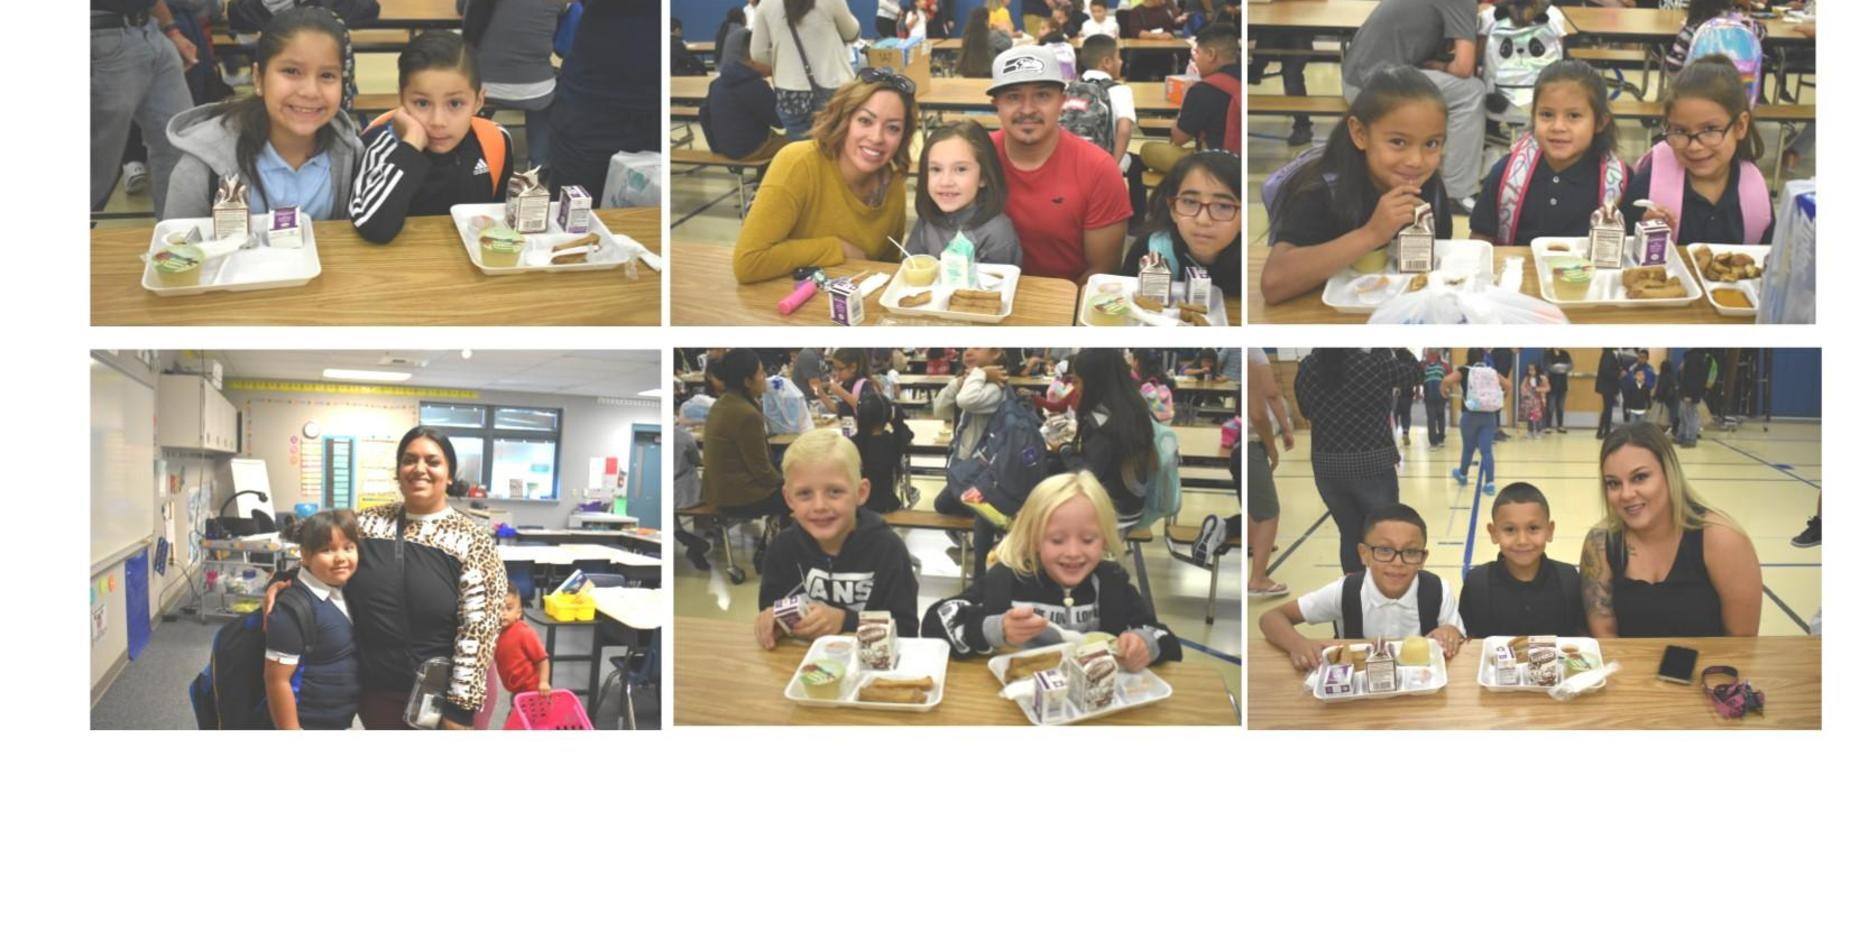 First day of school.  Kids eating breakfast with their parents.  Everyone is smiling!